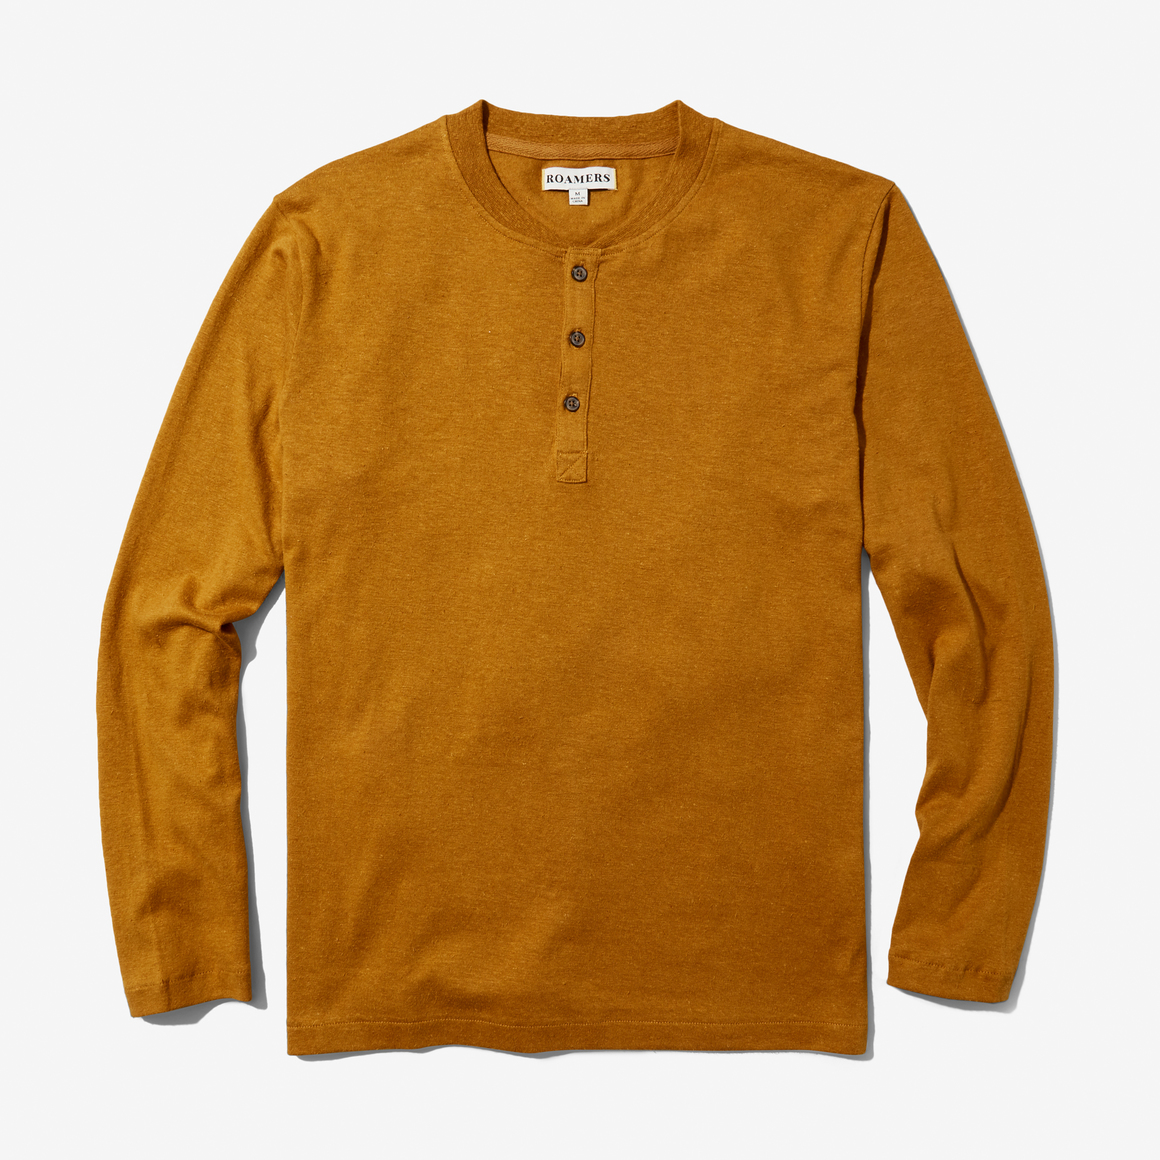 Best men's henleys